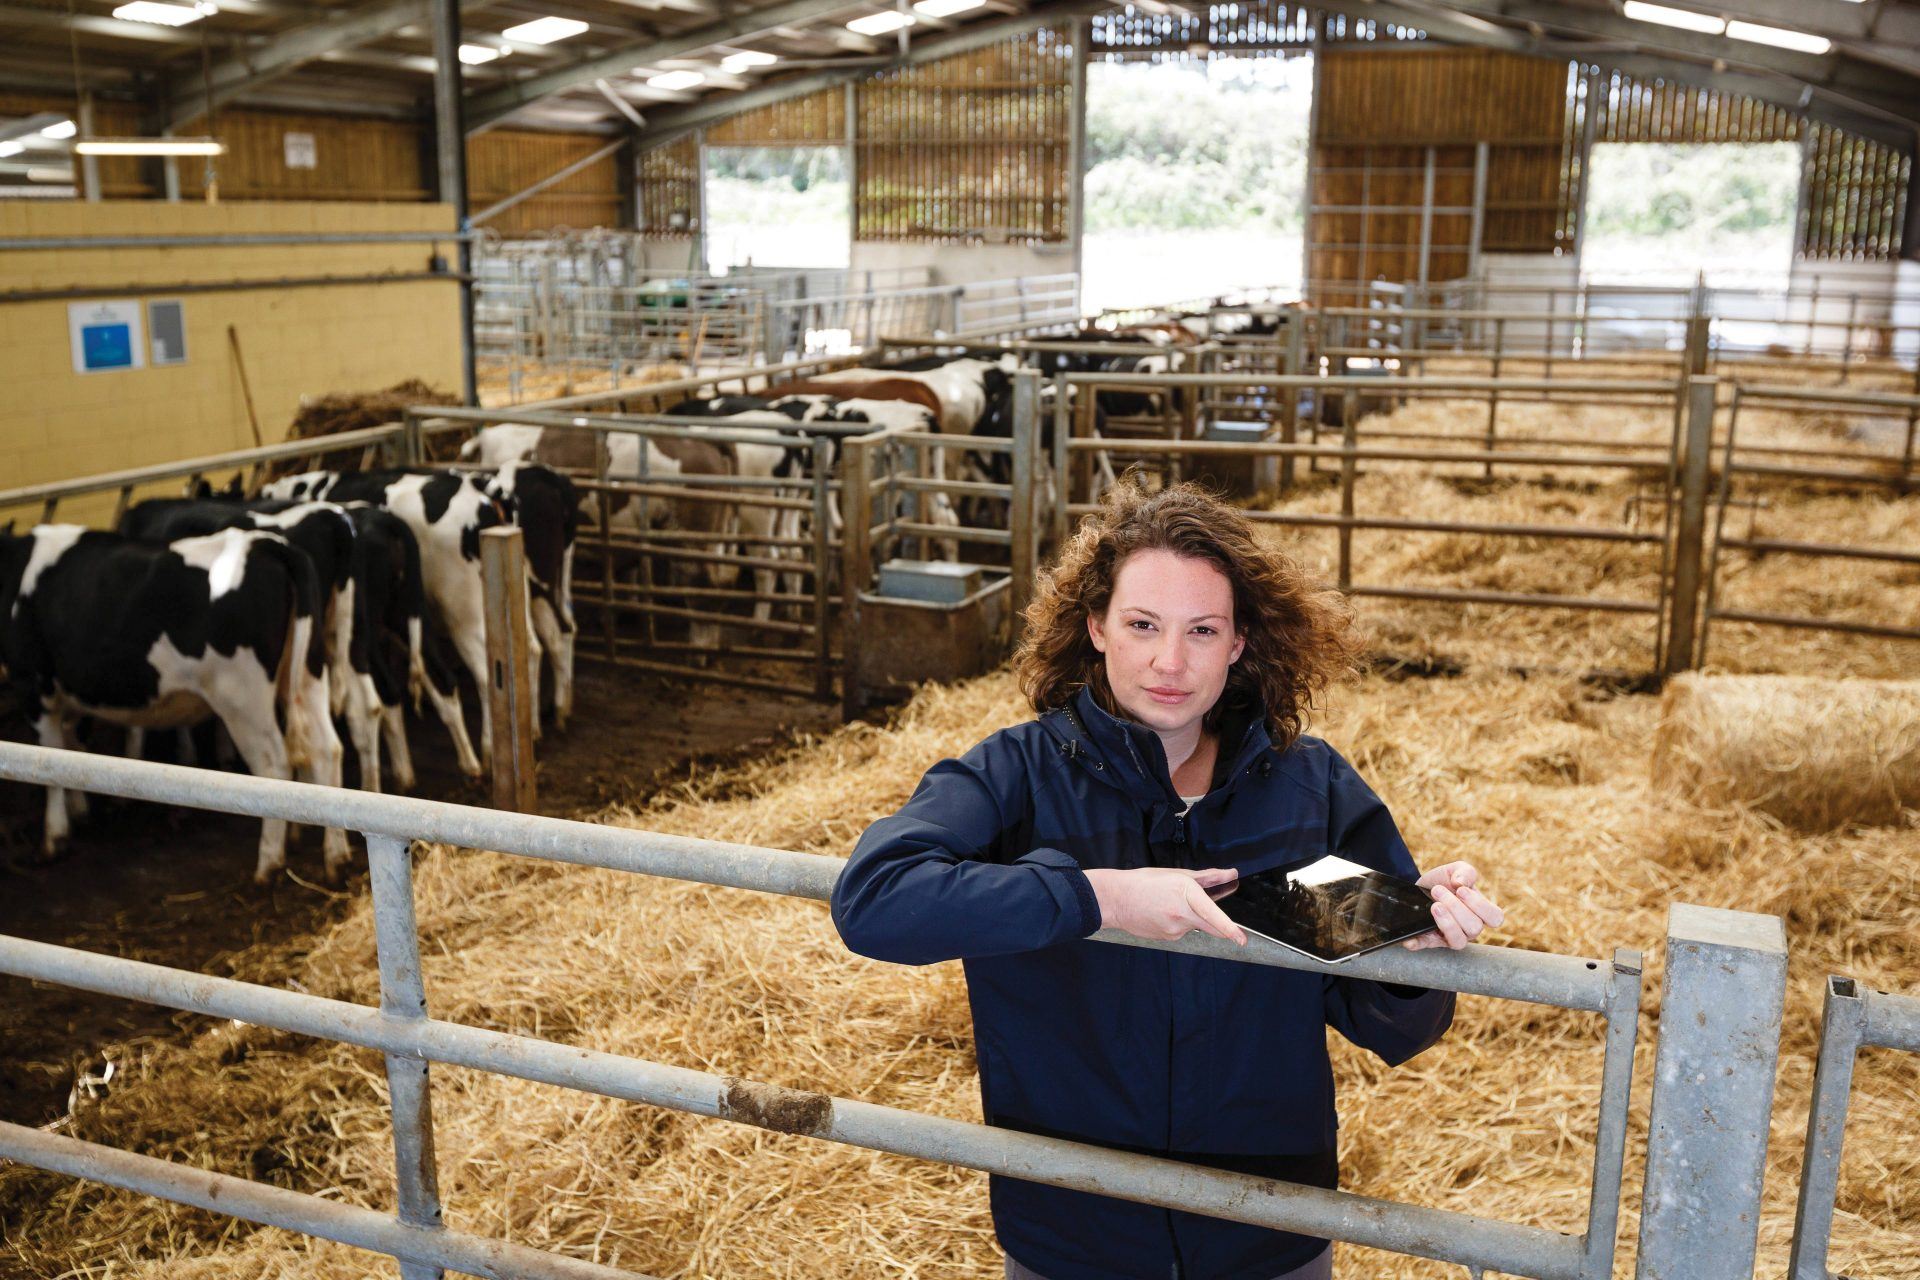 Agriculture degree student holding an iPad in a barn monitoring cow feed